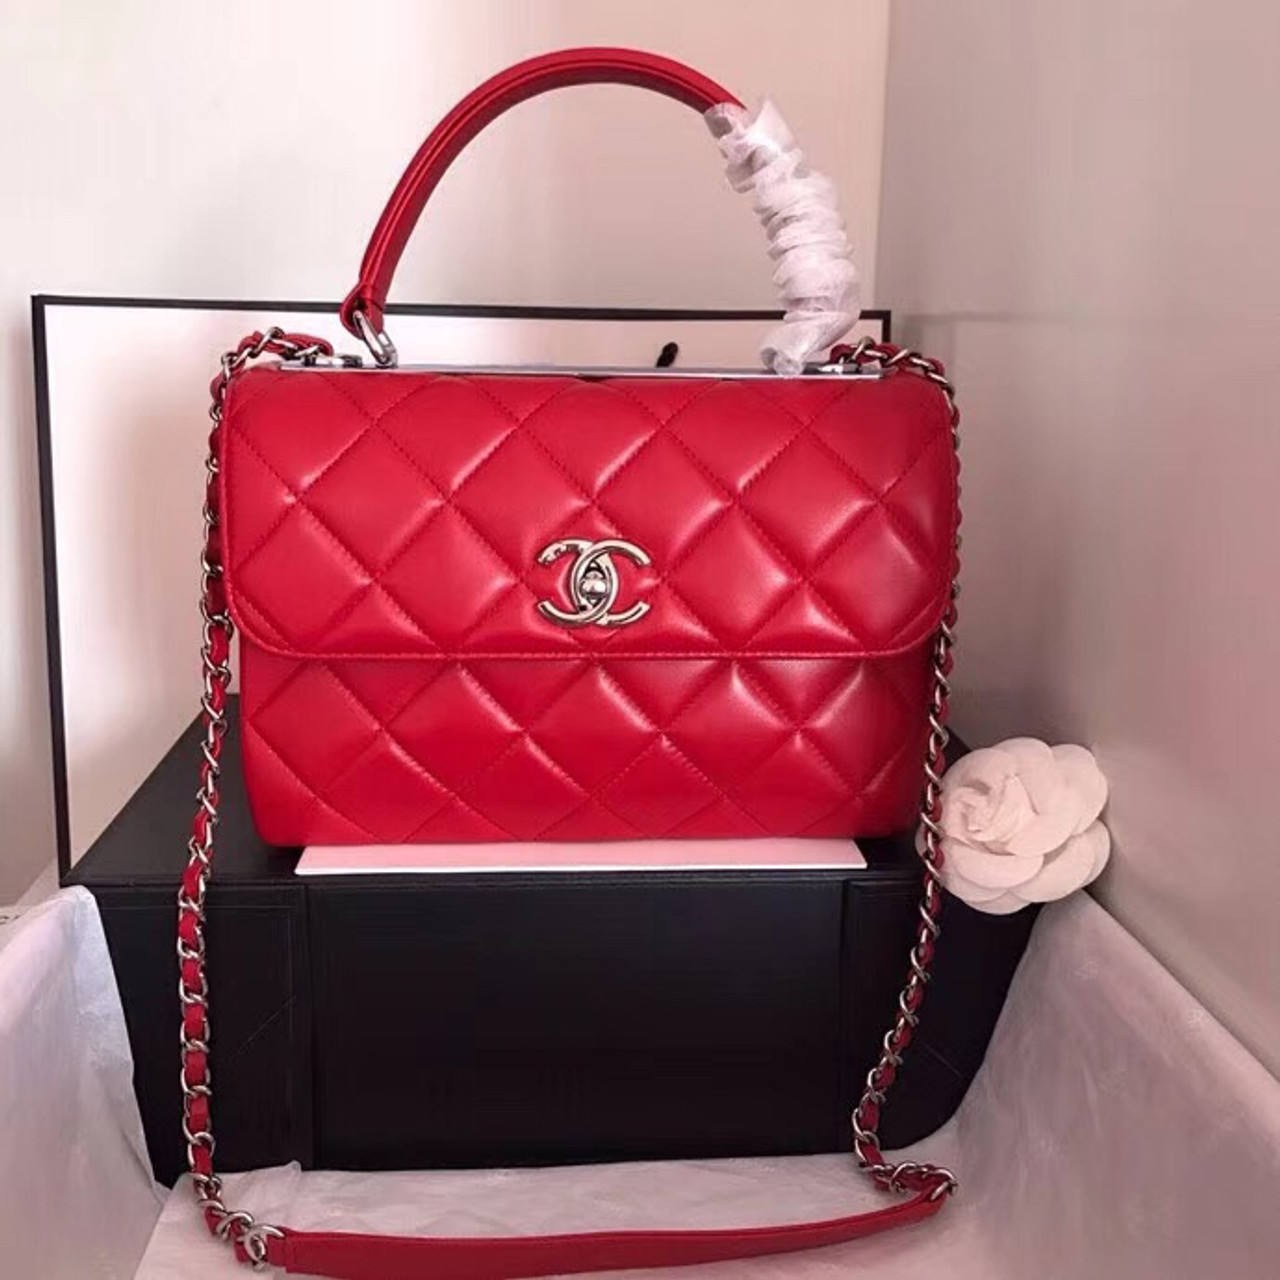 d477f1d3358b Chanel Small Trendy CC Top Handle Bag Quilted Lambskin Red - Bella ...